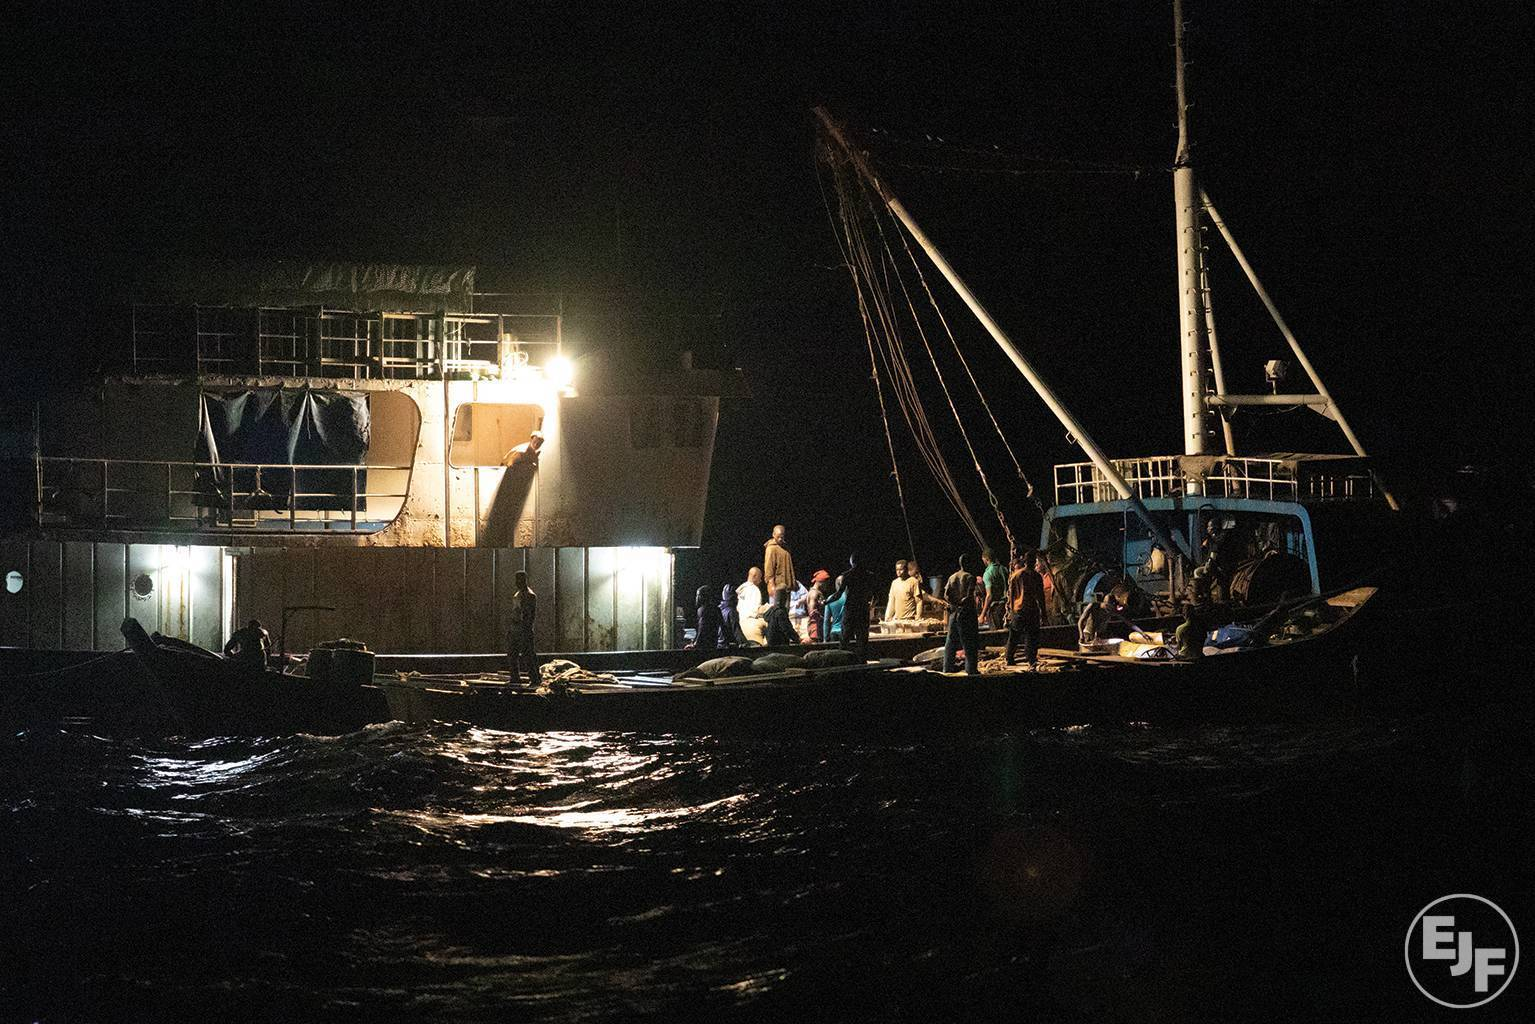 Trawler fined for targeting undersized fish with illegal nets in Ghana